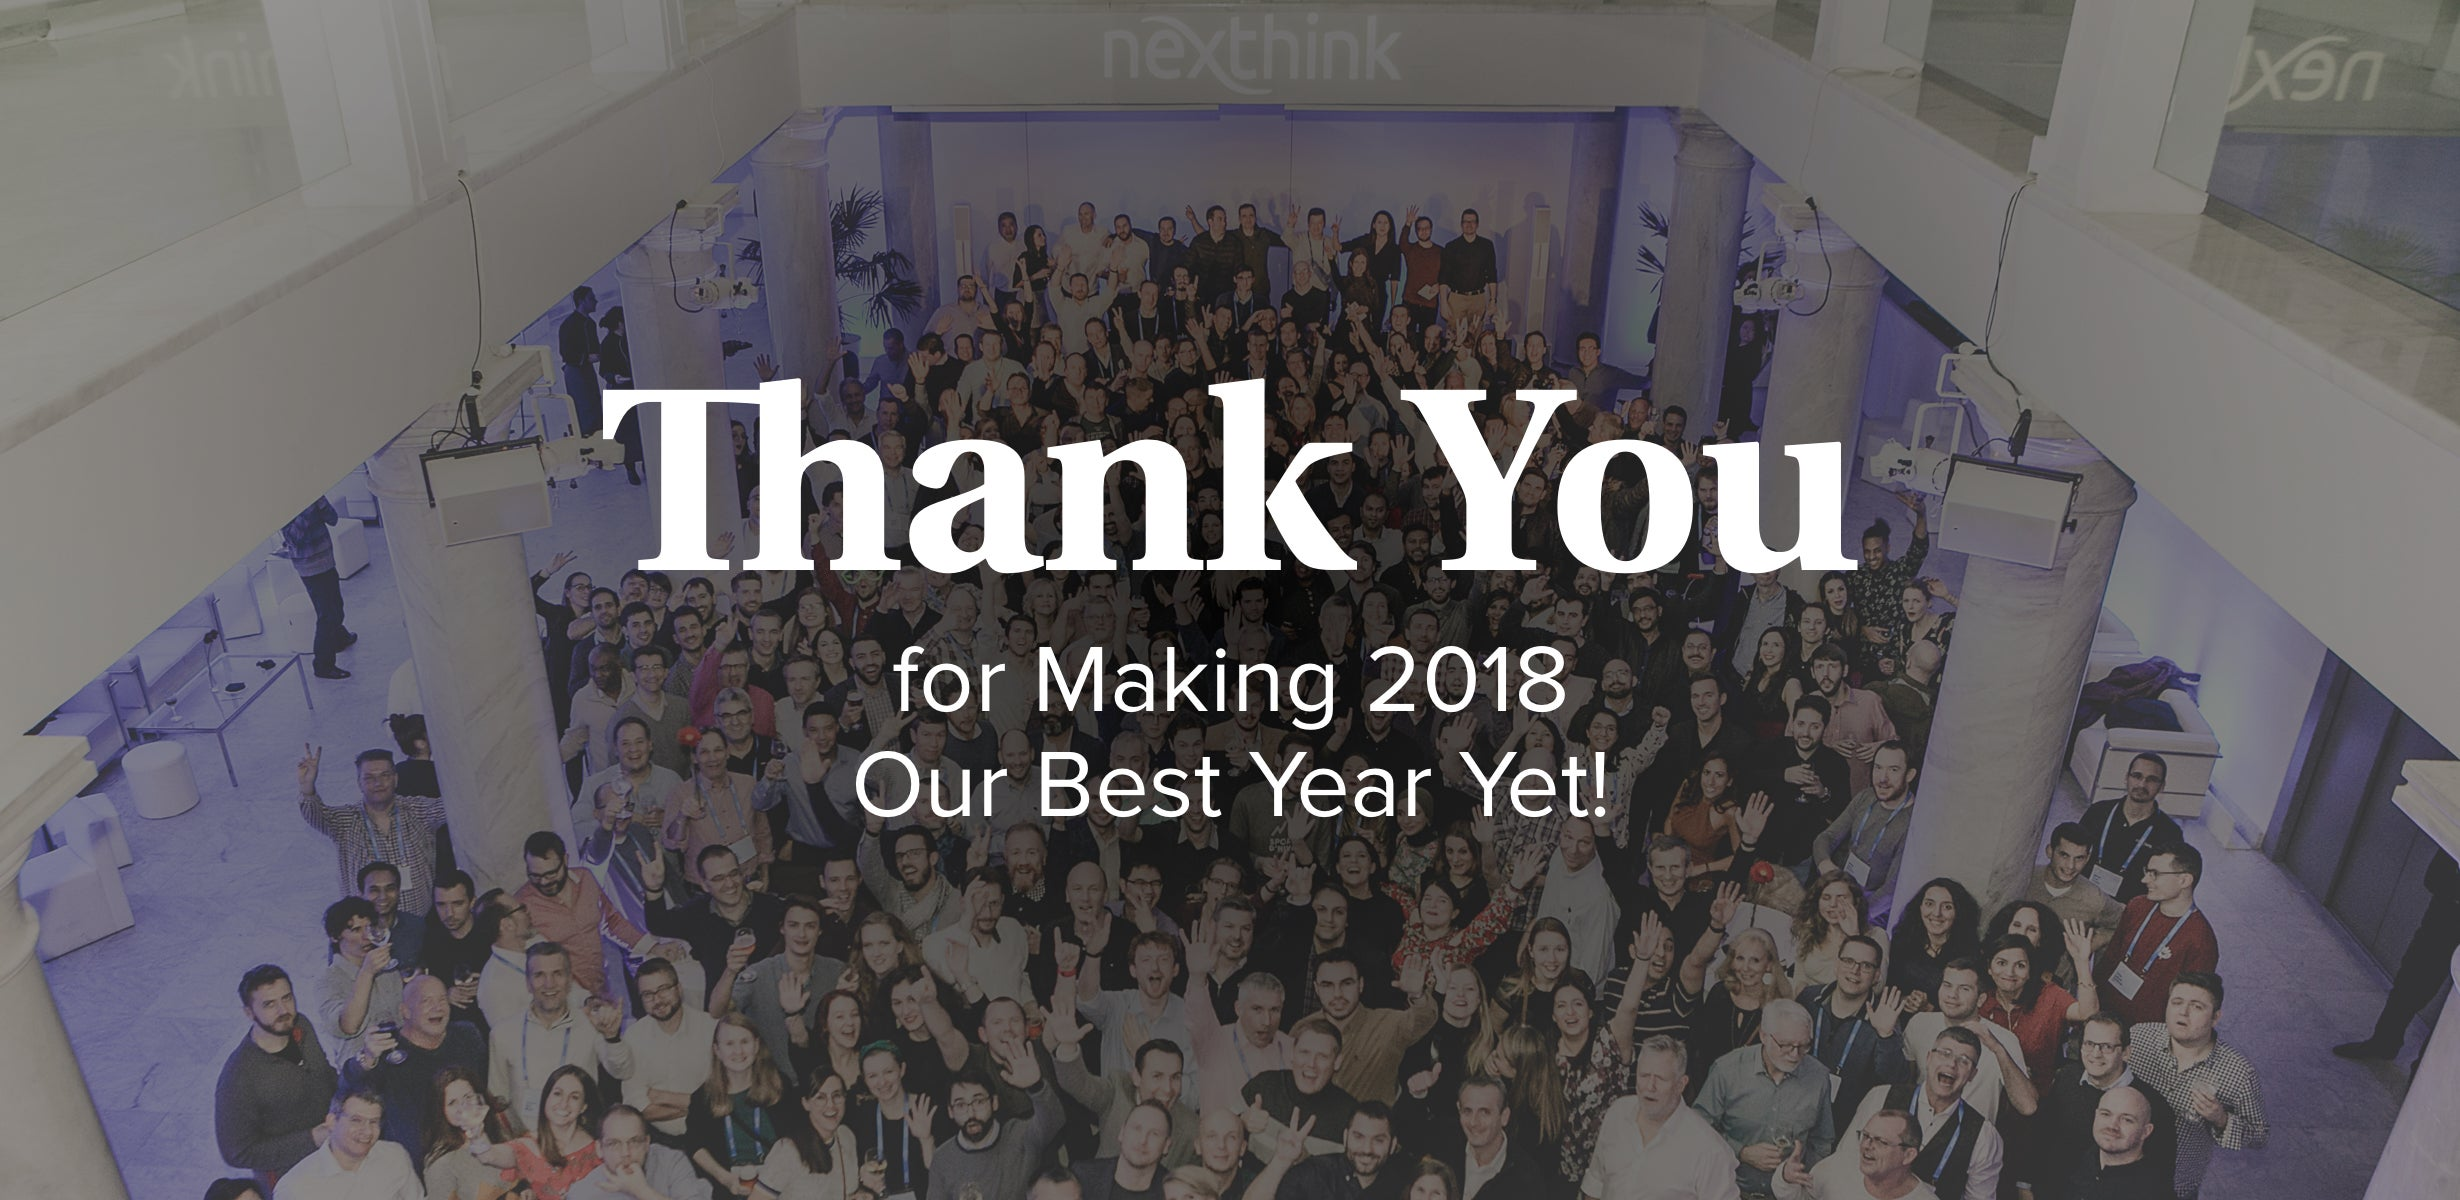 Thank You for Making 2018 Our Best Year Yet!